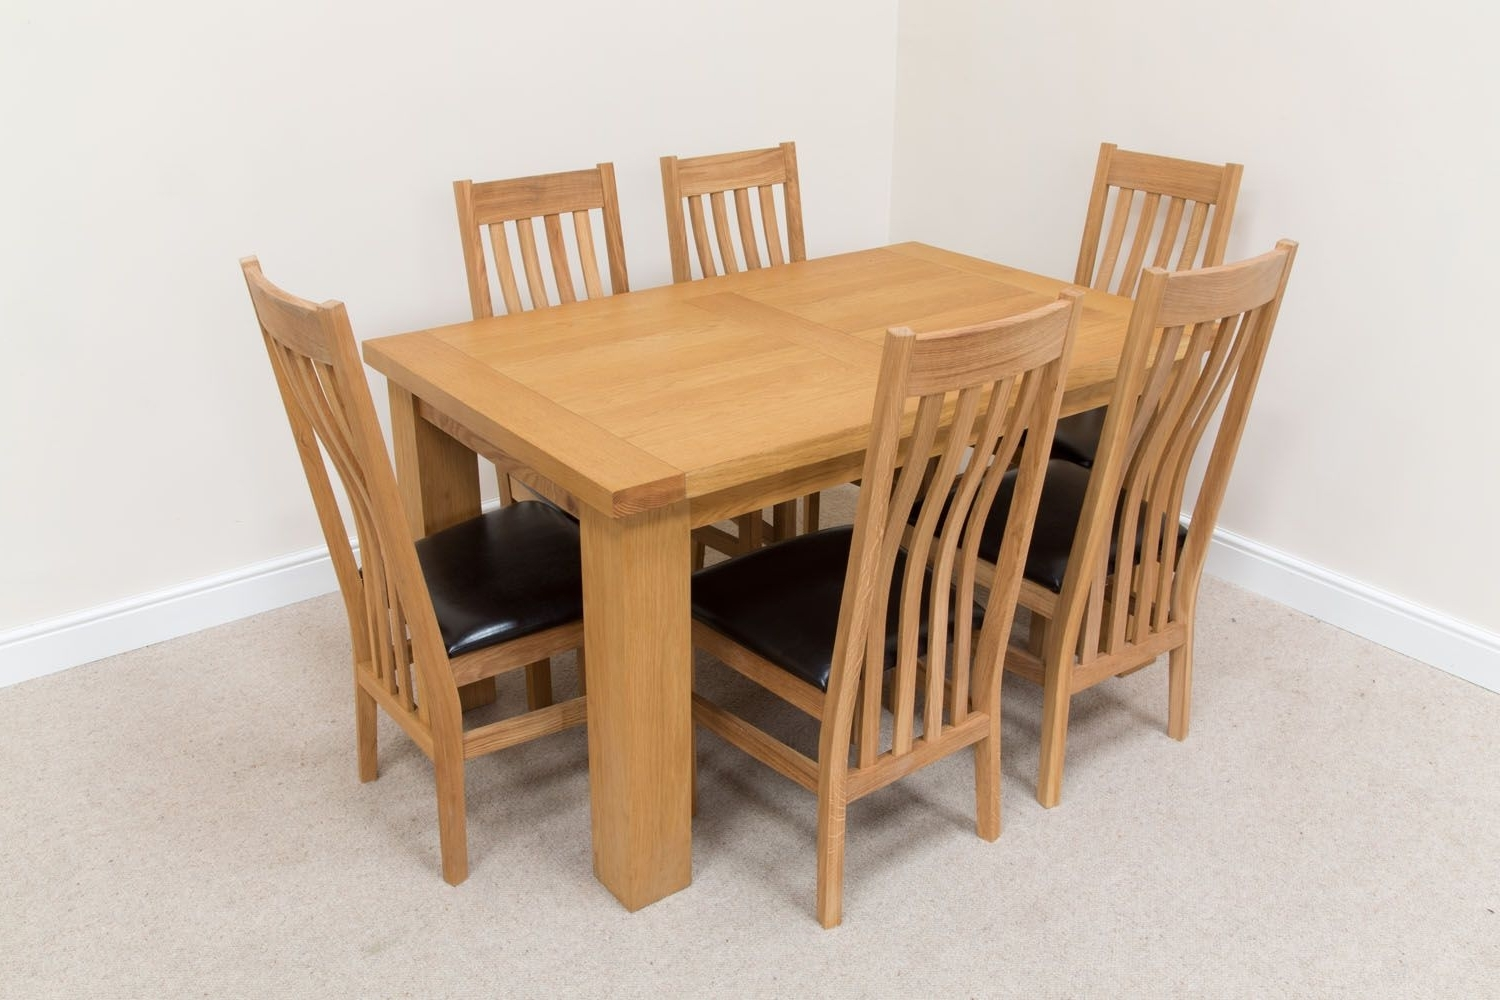 Well Known Oak Dining Tables With 6 Chairs Inside Riga 6 Seater Oak Dining Table Set Brown Leather Chairs (View 21 of 25)